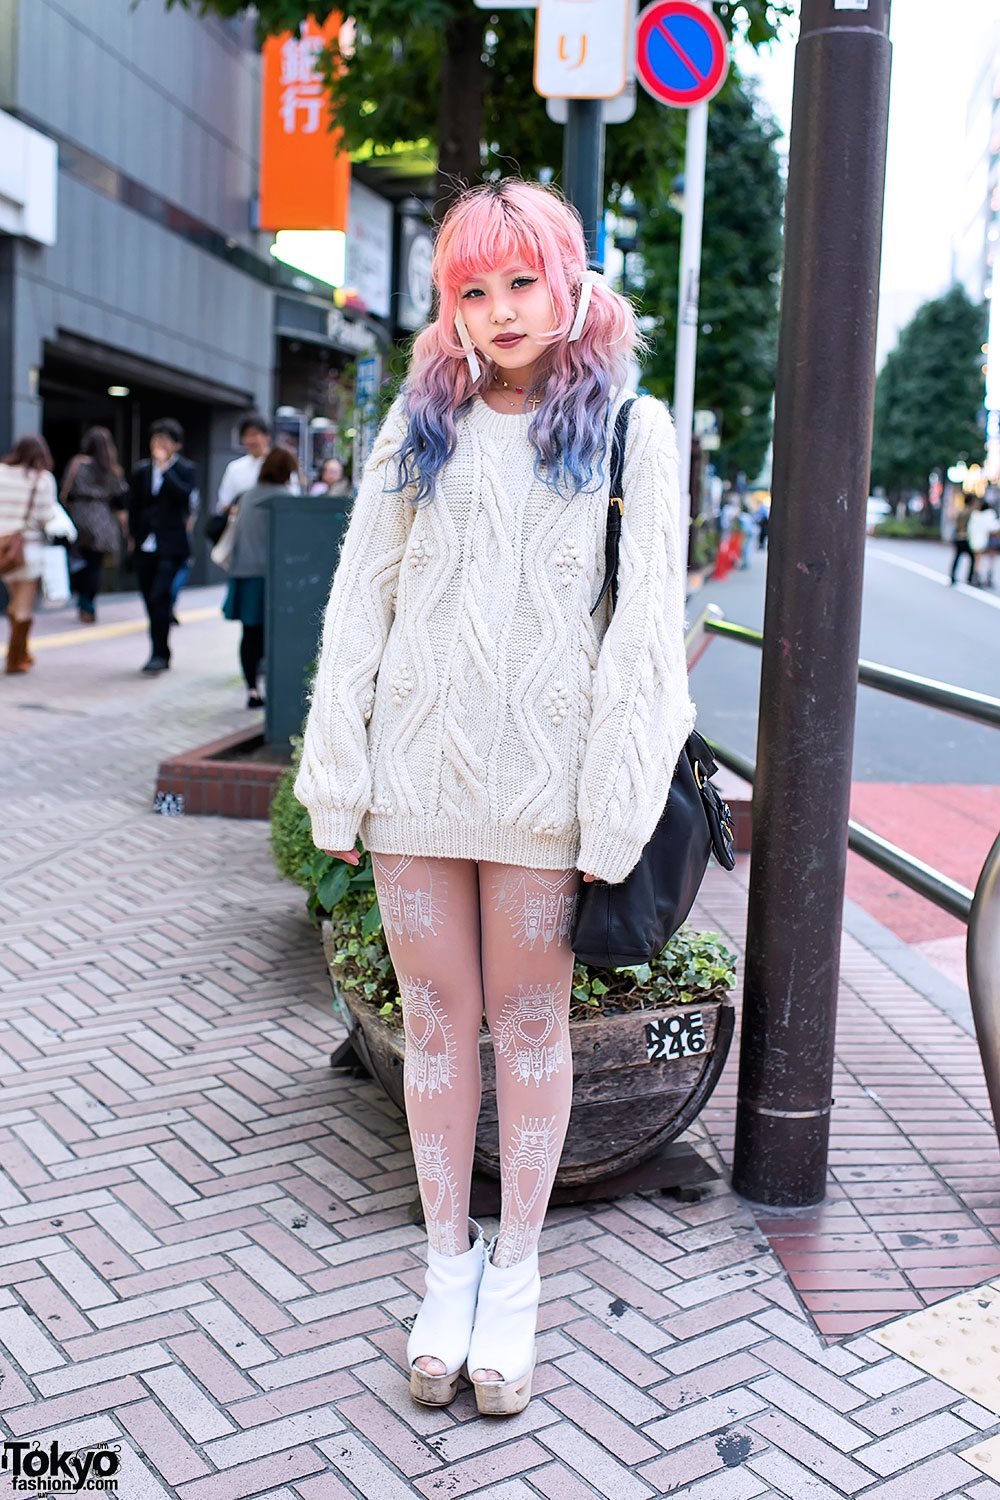 Dip Dye Hair Cable Knit Sweater Prada Jeffrey Campbell In Shibuya